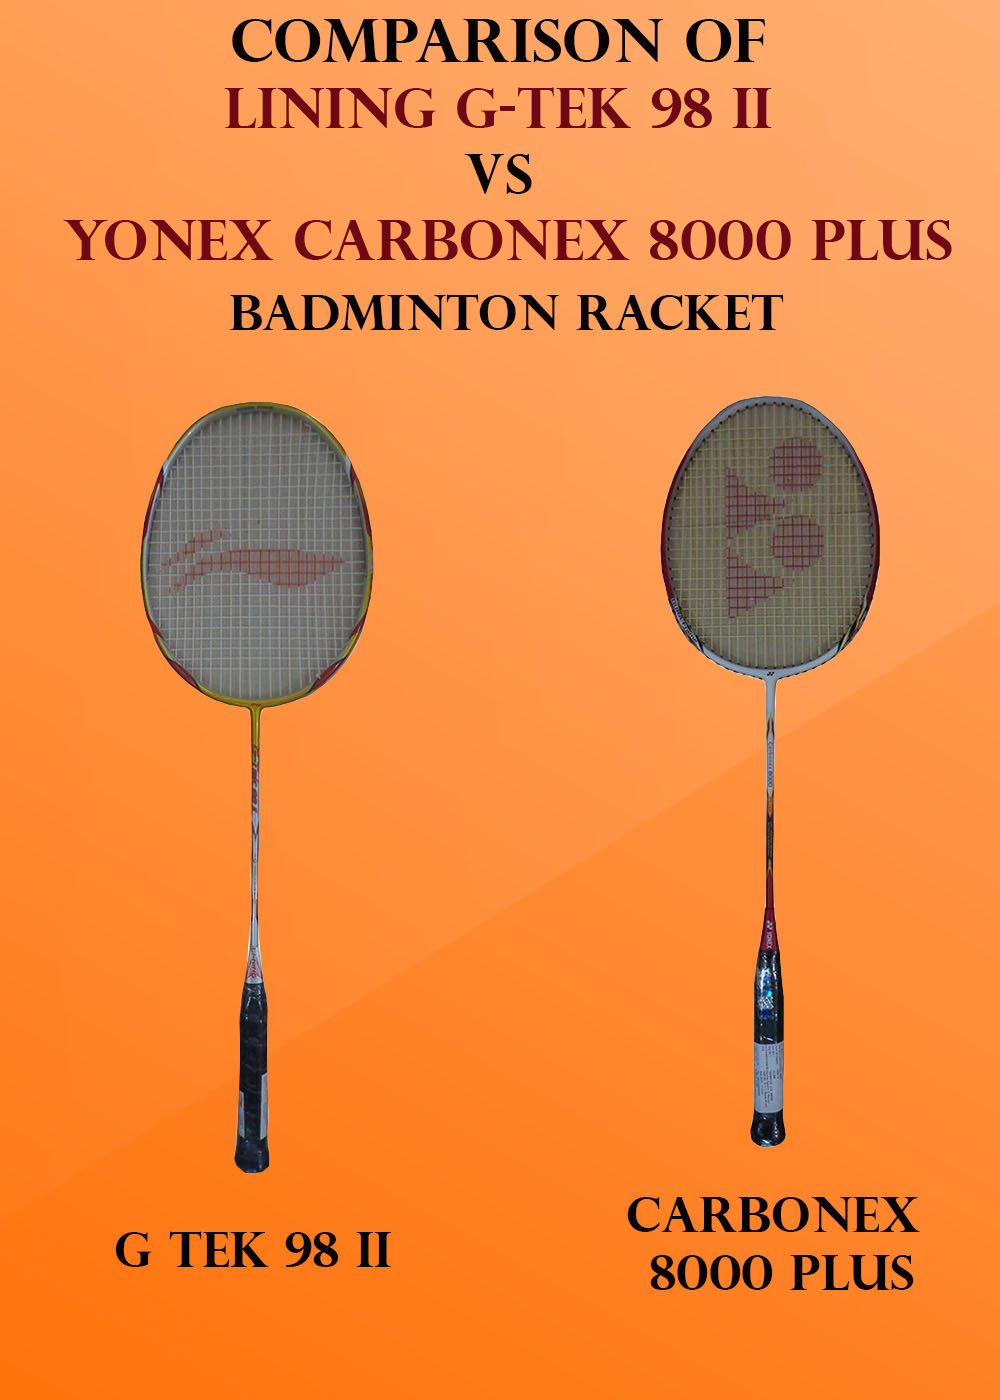 Comparison of Lining G tek 98 vs carbonex 8000_1